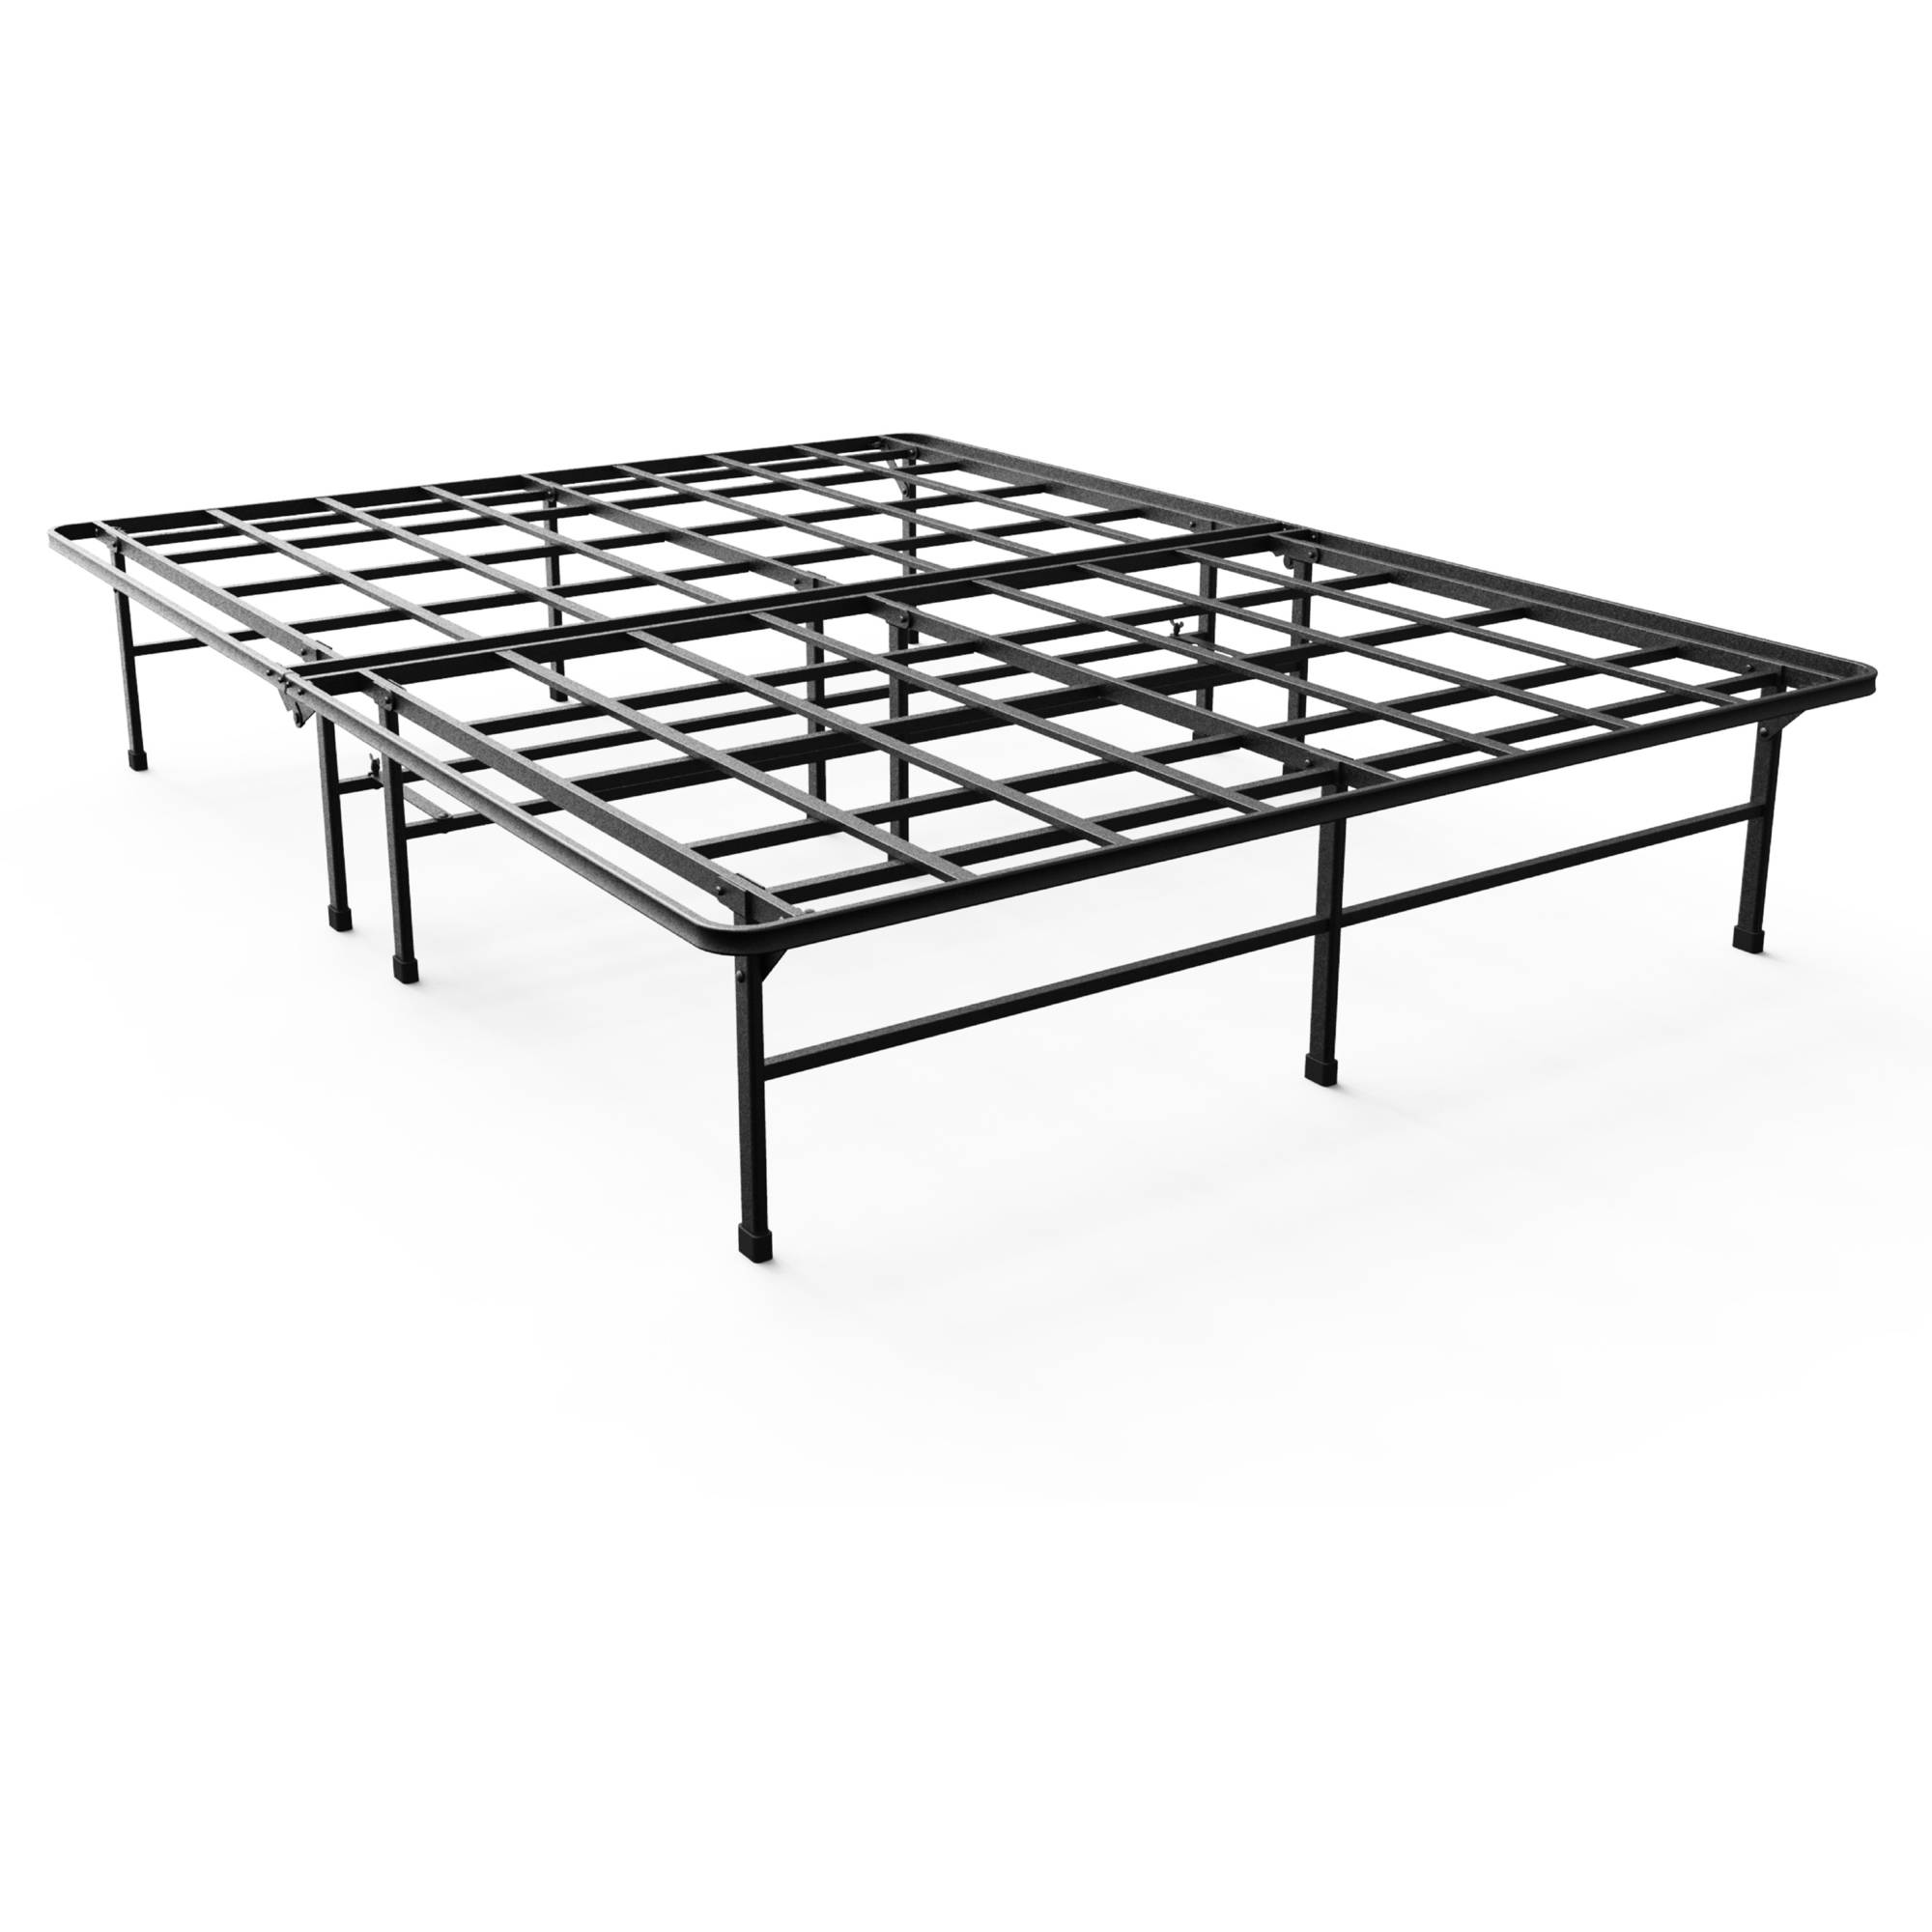 Spa Sensations Elite Smart Base Steel Bed Frame - Walmart.com